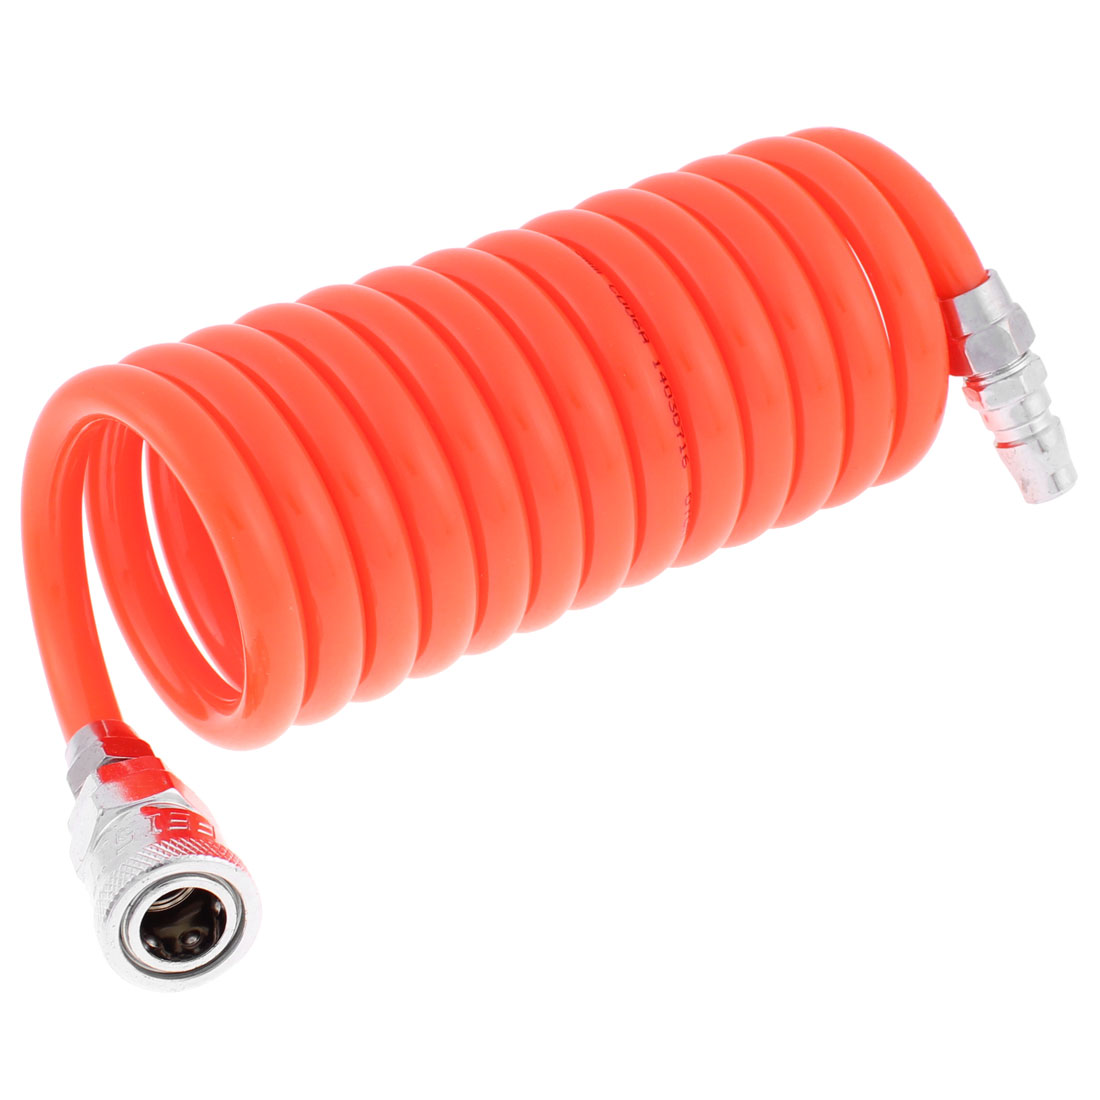 3 Meters Long 10mm x 6.5mm Polyurethane Coiled Air Hose Pipe Orange